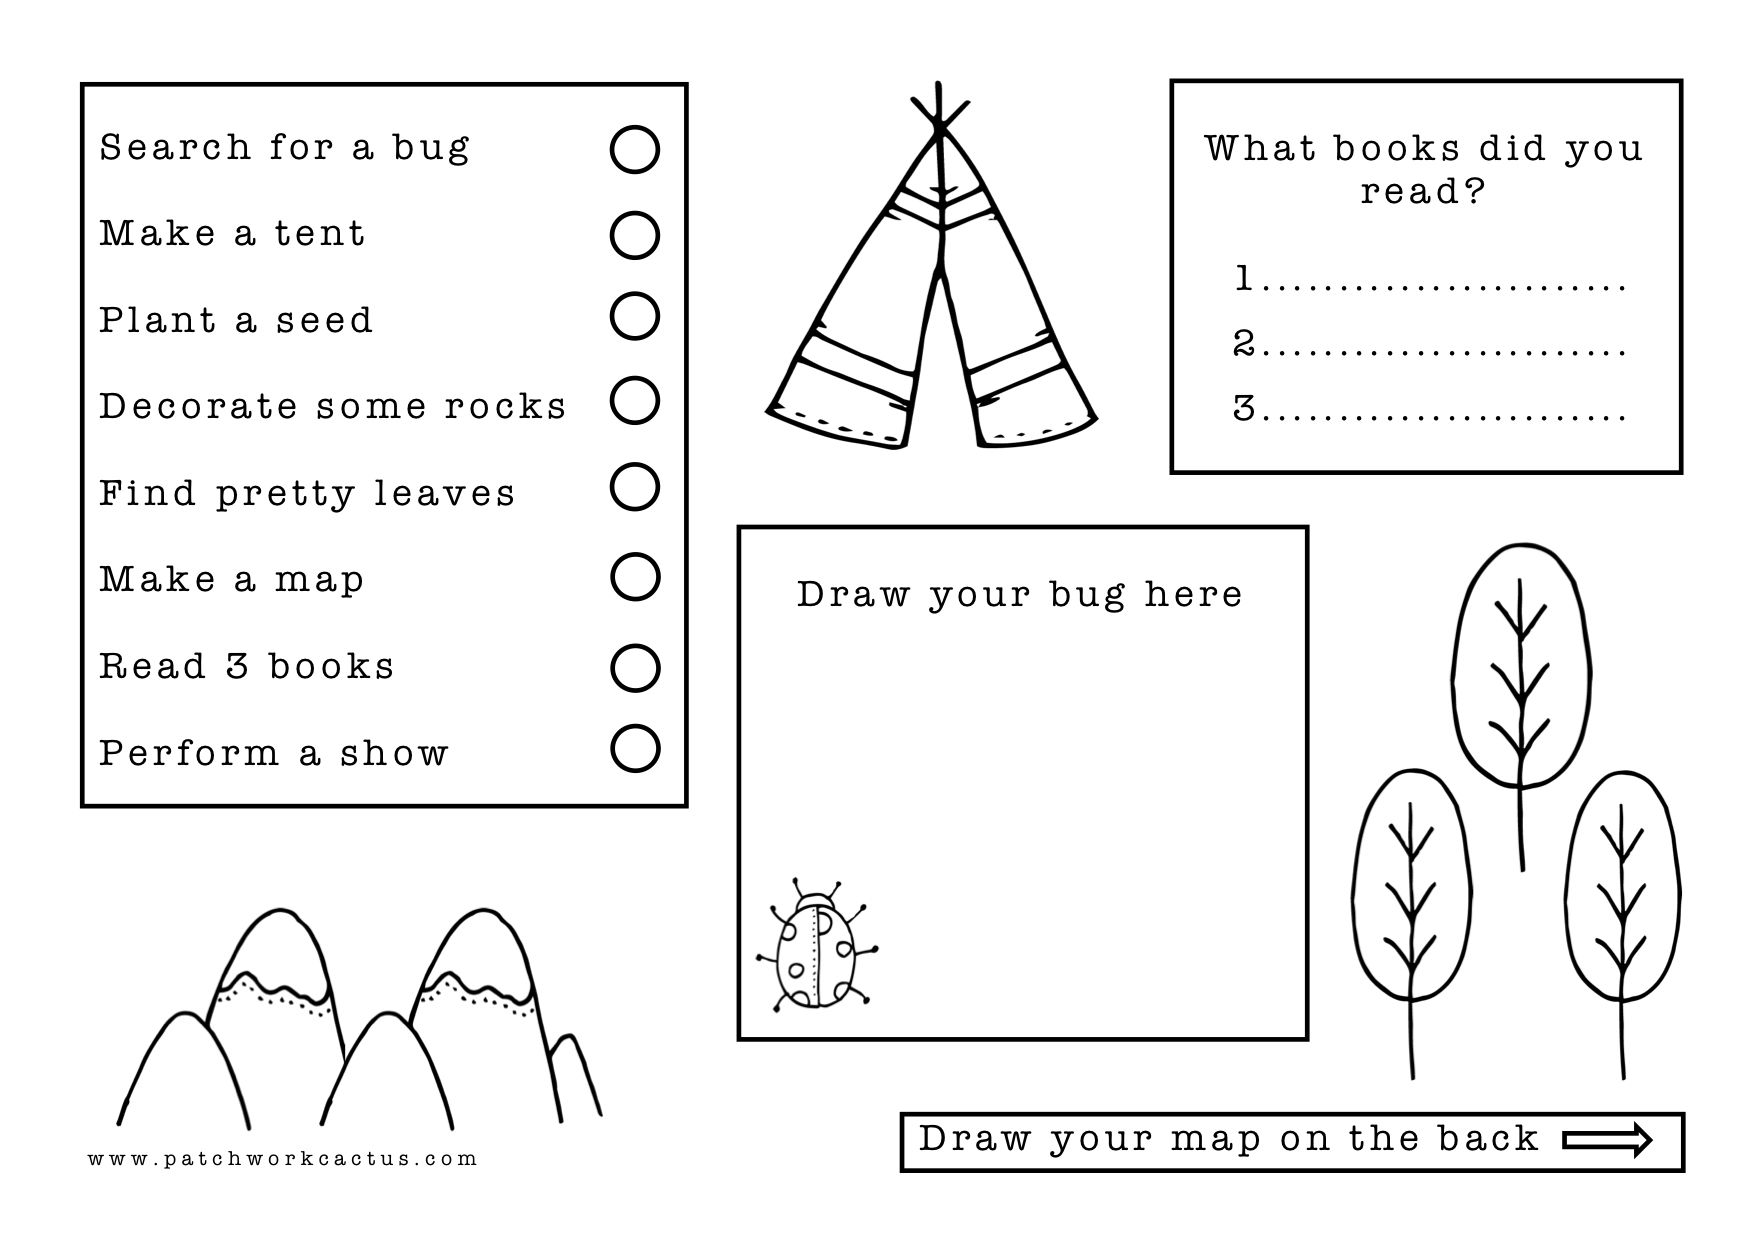 A Printable Winter Checklist For Bored Kids